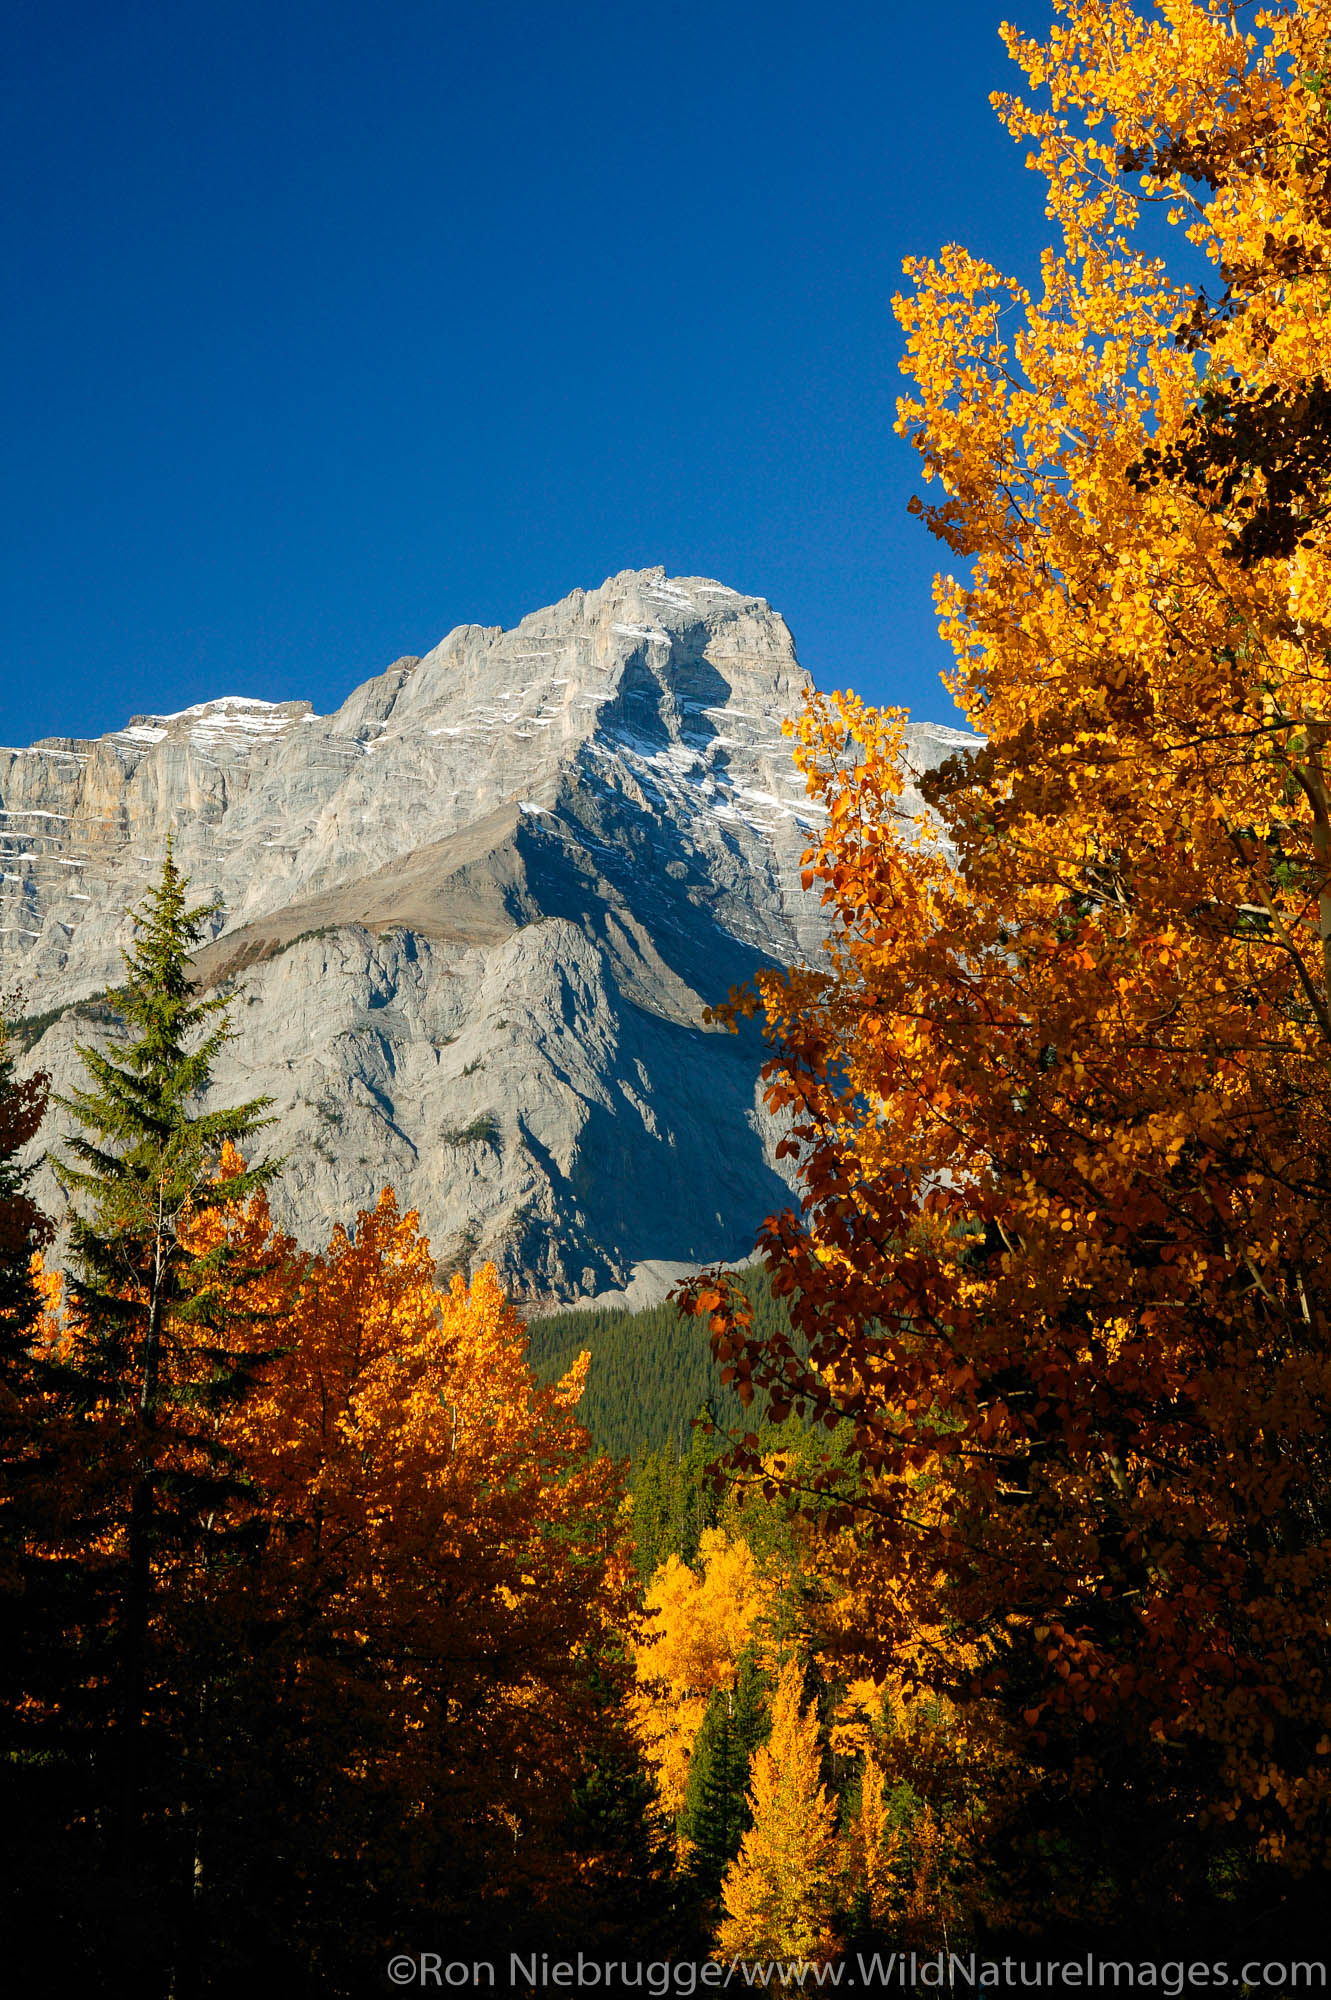 Fall colors and Cascade Mountain (2,997 m) from the Minnewanka Loop, Banff National Park, Alberta, Canada.